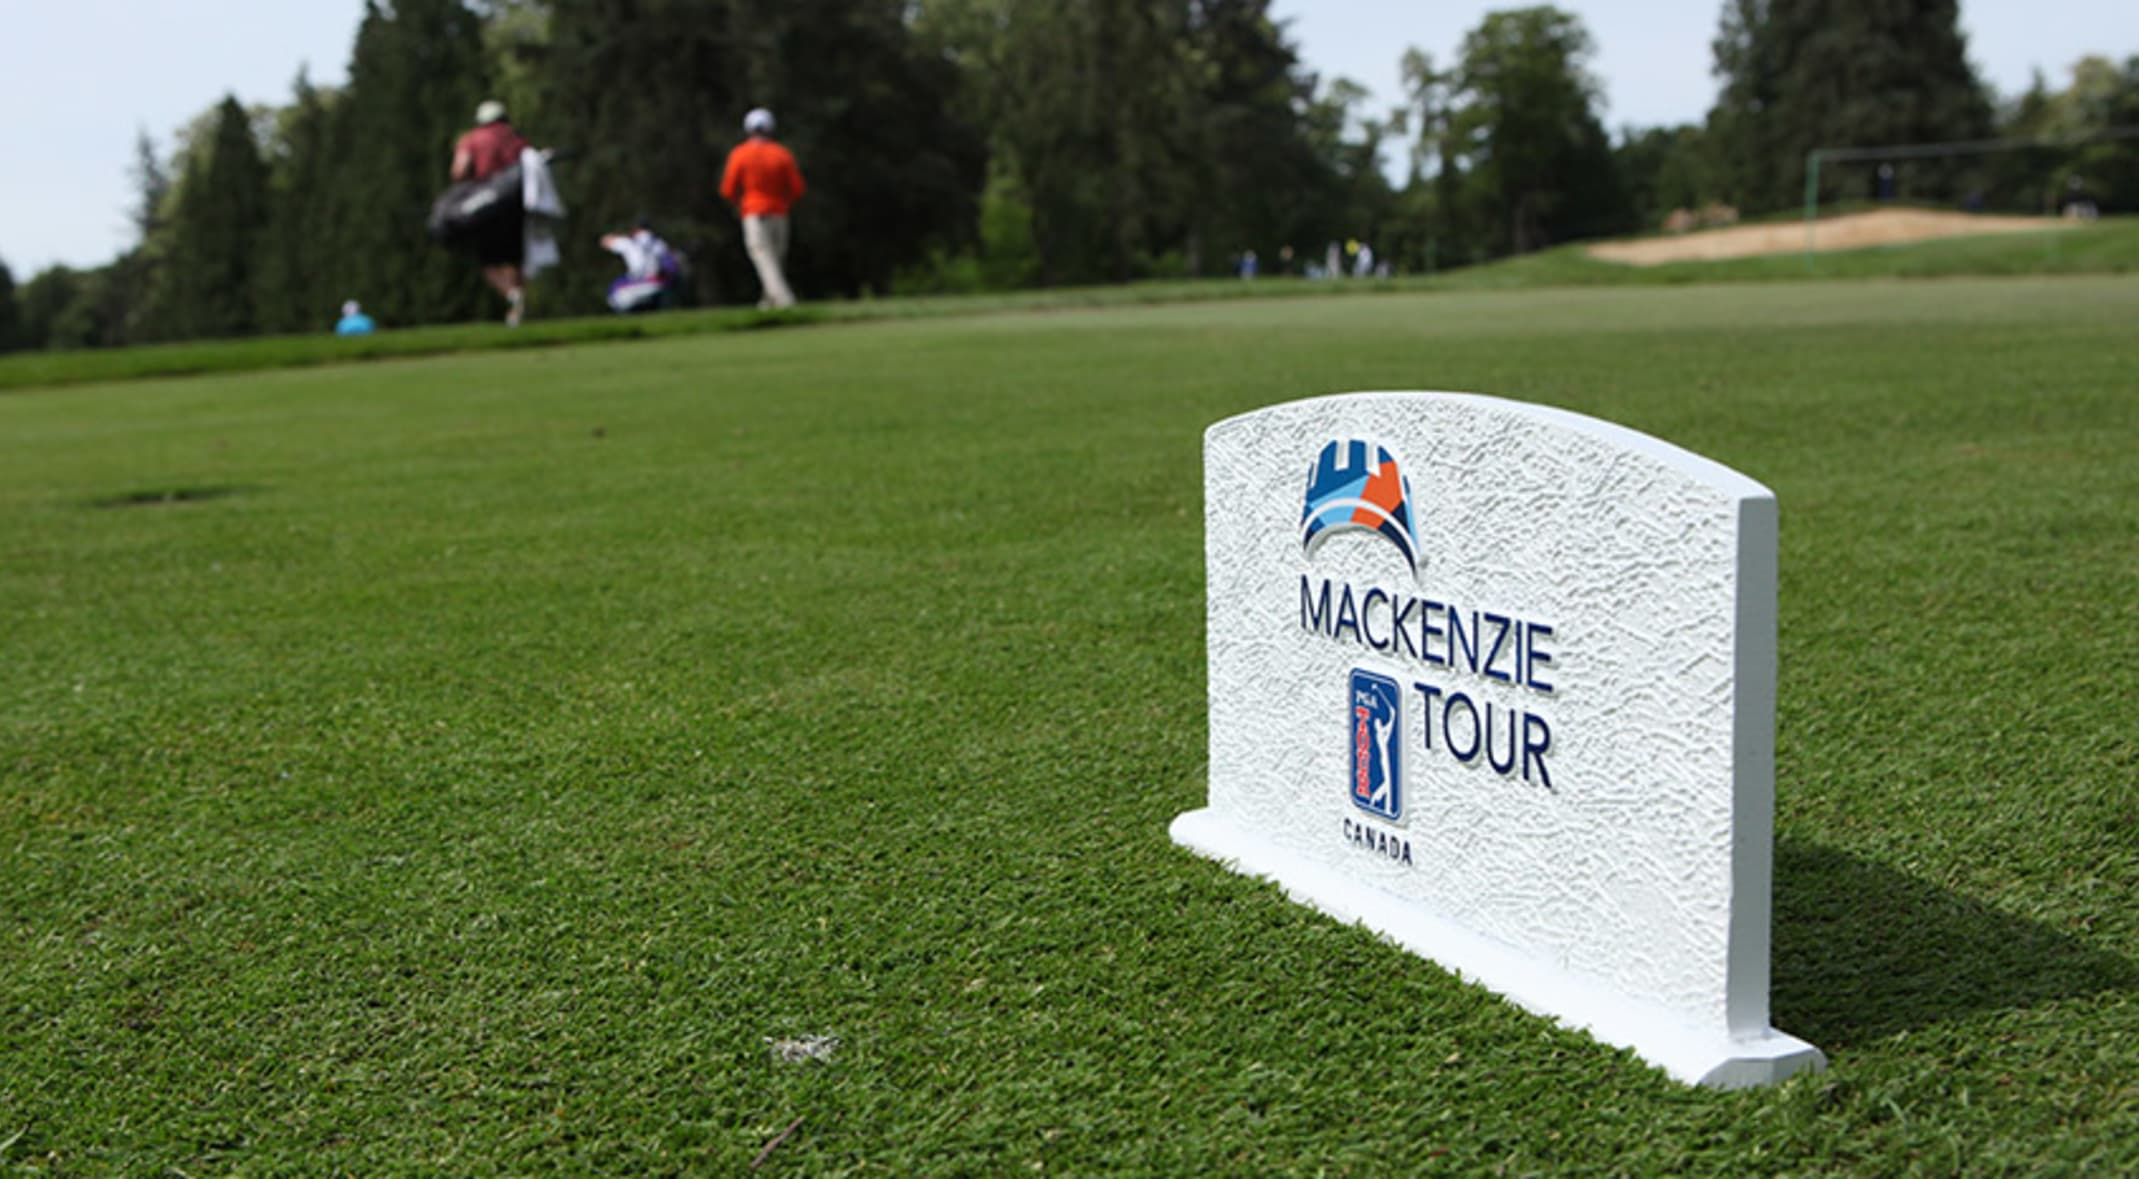 Storylines: Canada Life Open